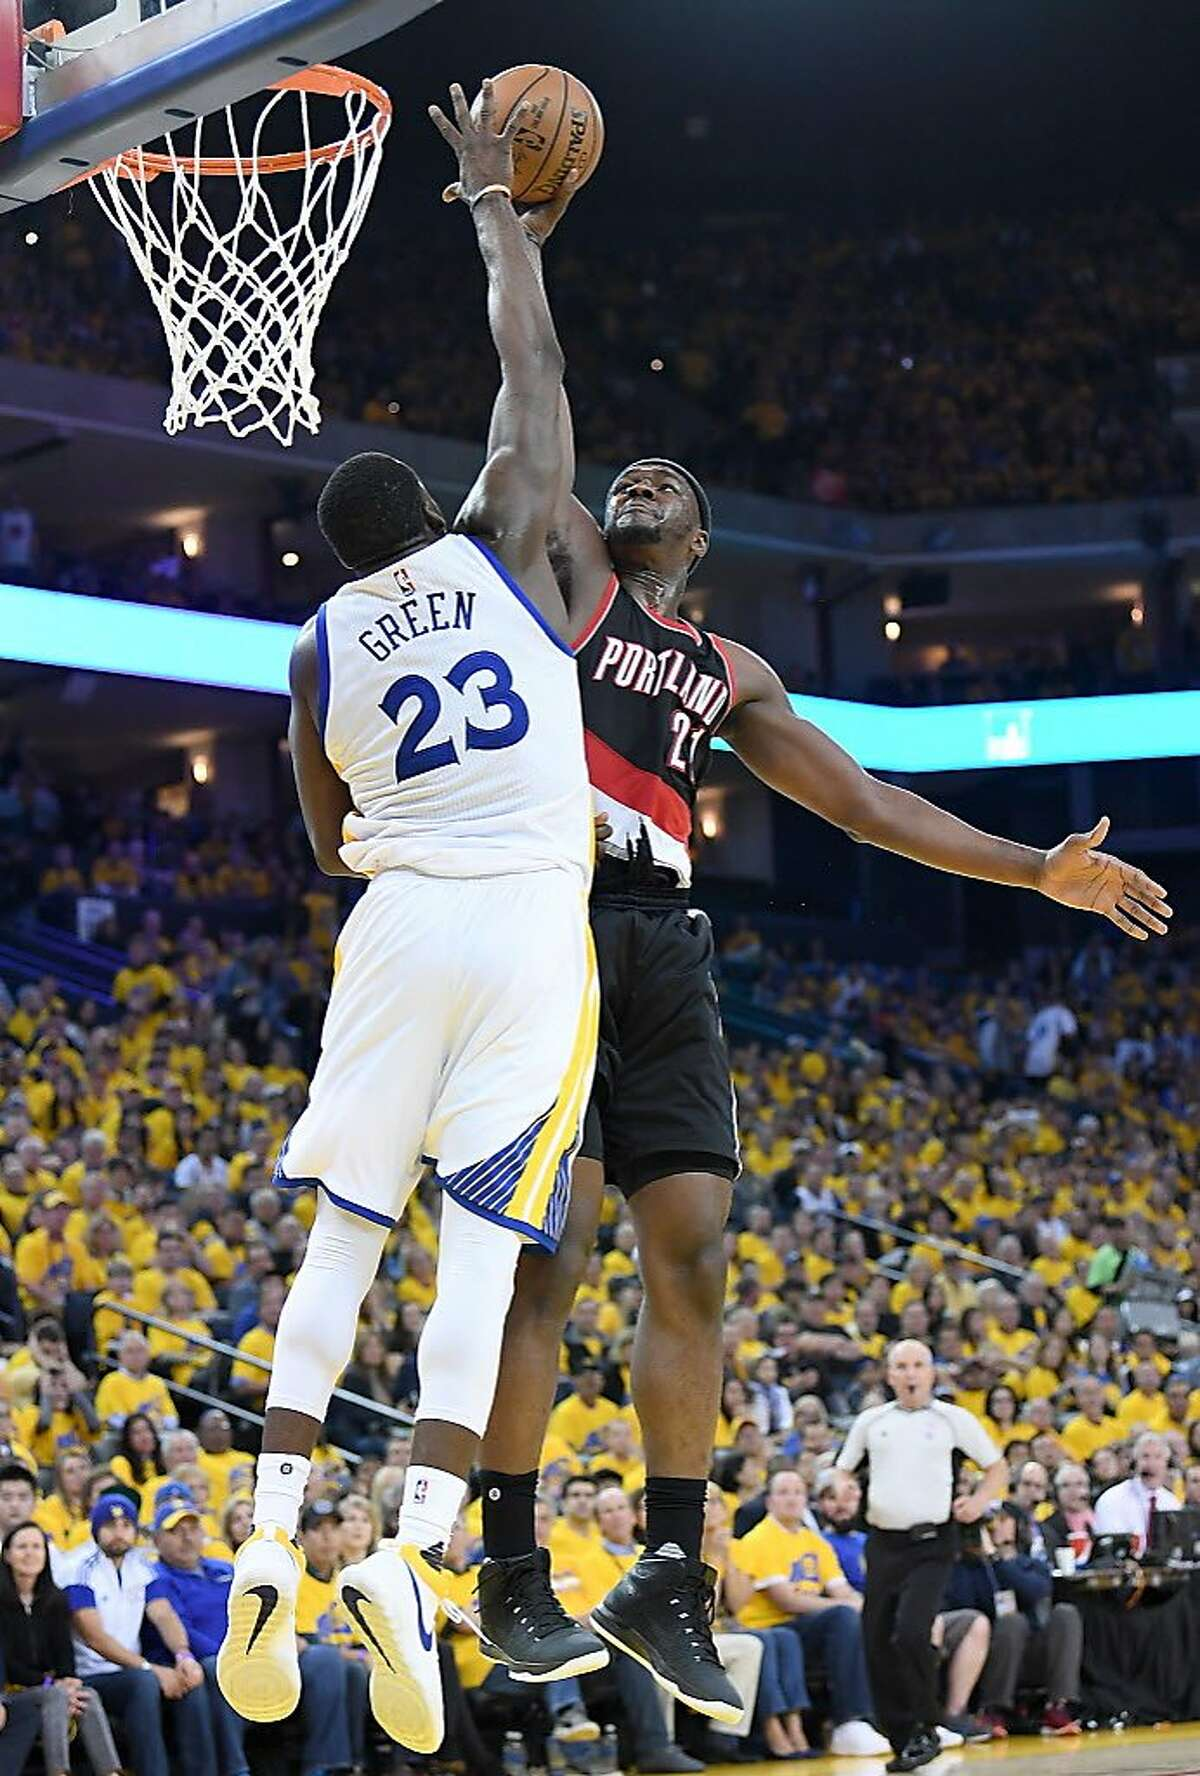 OAKLAND, CA - APRIL 16: Draymond Green #23 of the Golden State Warriors blocks the shot of Noah Vonleh #21 of the Portland Trail Blazers in the third quarter during Game One of the first round of the 2017 NBA Playoffs at ORACLE Arena on April 16, 2017 in Oakland, California. NOTE TO USER: User expressly acknowledges and agrees that, by downloading and or using this photograph, User is consenting to the terms and conditions of the Getty Images License Agreement. (Photo by Thearon W. Henderson/Getty Images)